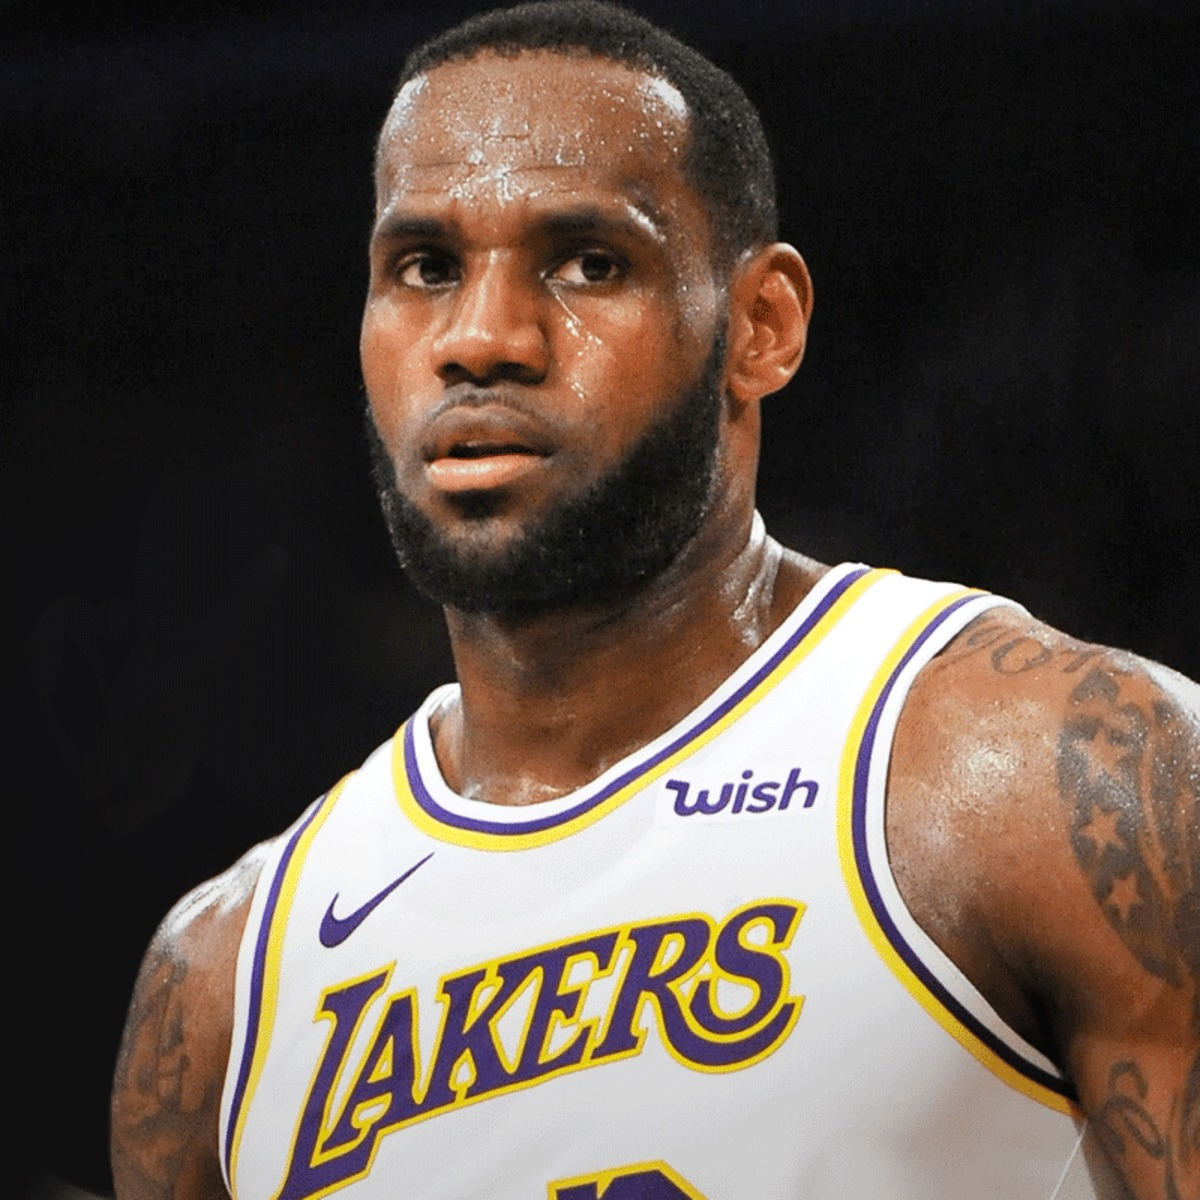 """""""lebron-james-expresses-his-frustration-after-another-black-man-gets-targeted-by-police-and-shot-7-times-in-the-back"""""""